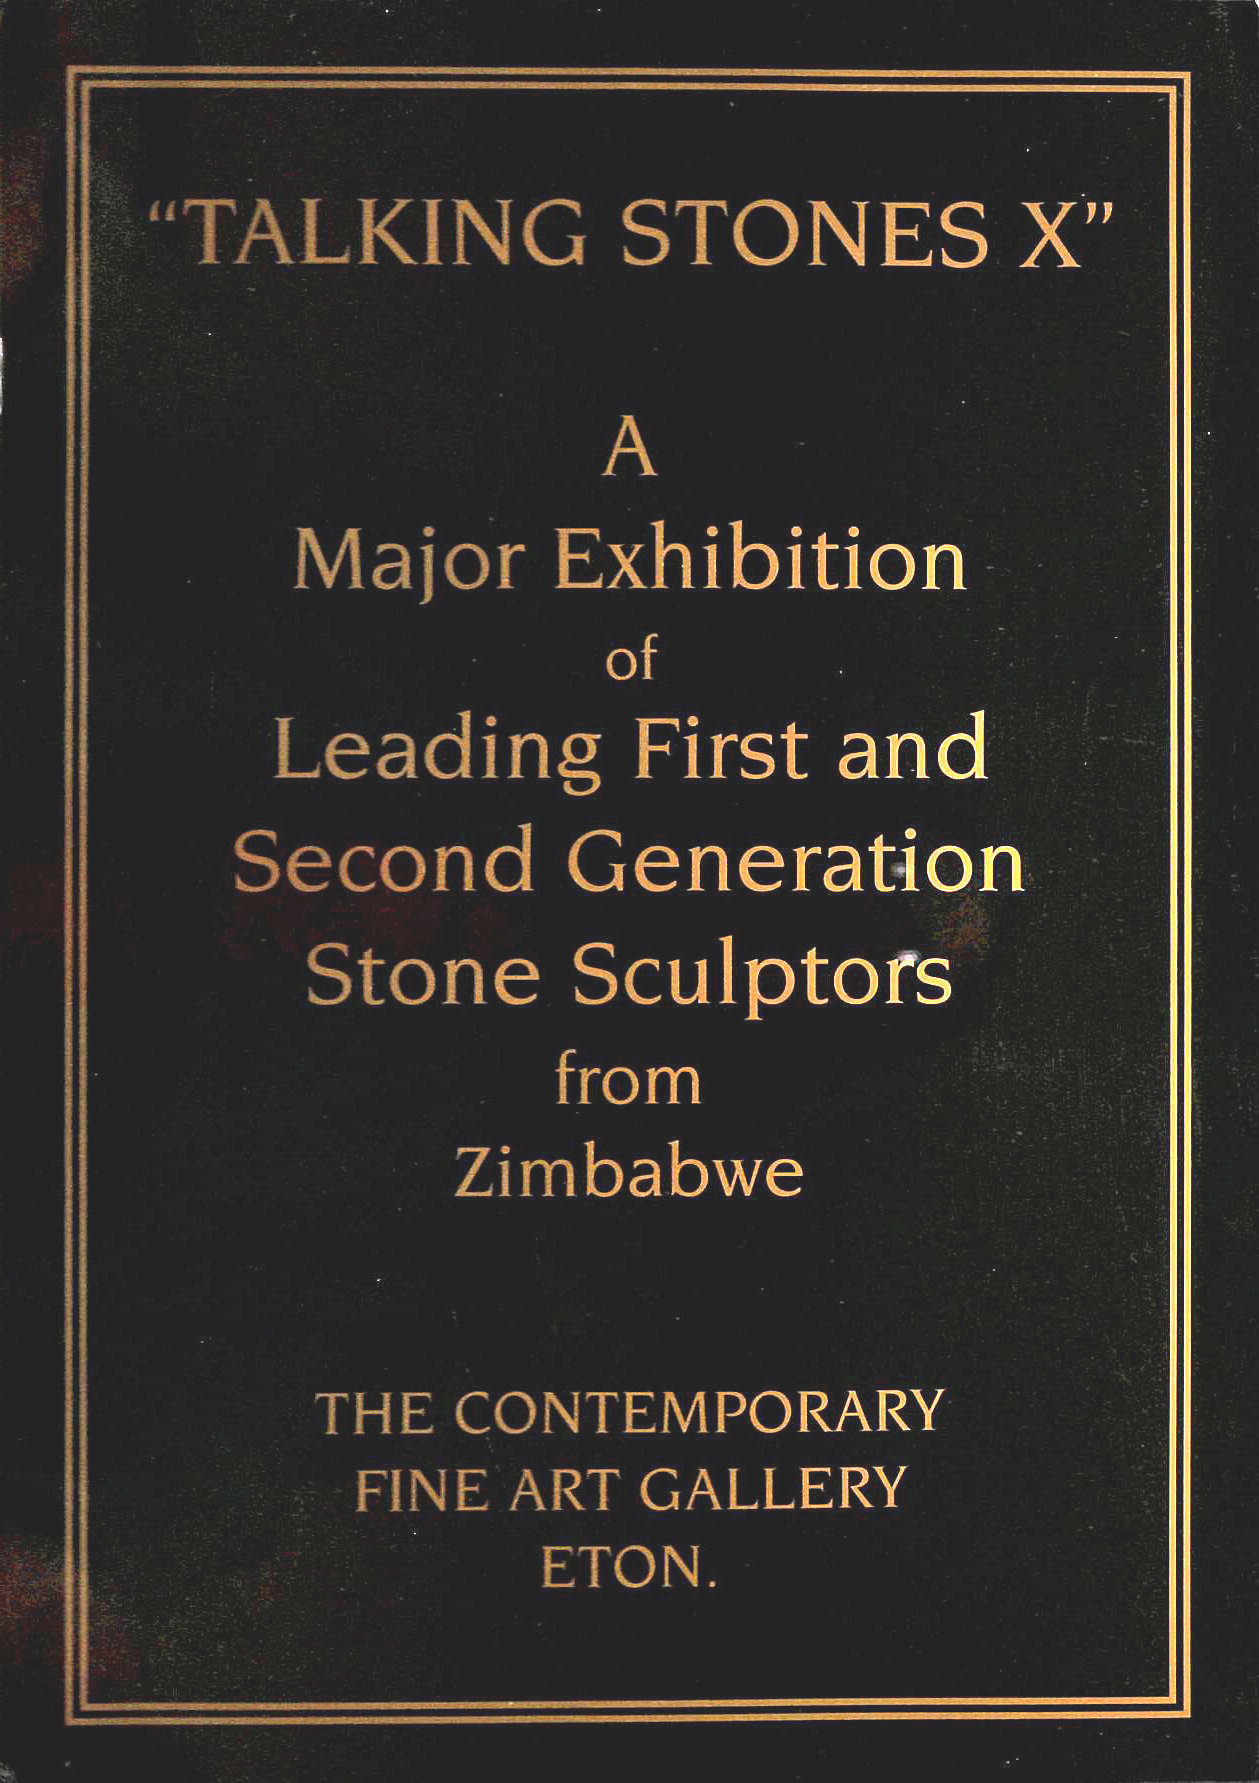 Image for Talking Stones X, A Major Exhibition of Leading First and Second Generation Stone Sculptors from Zimbabwe